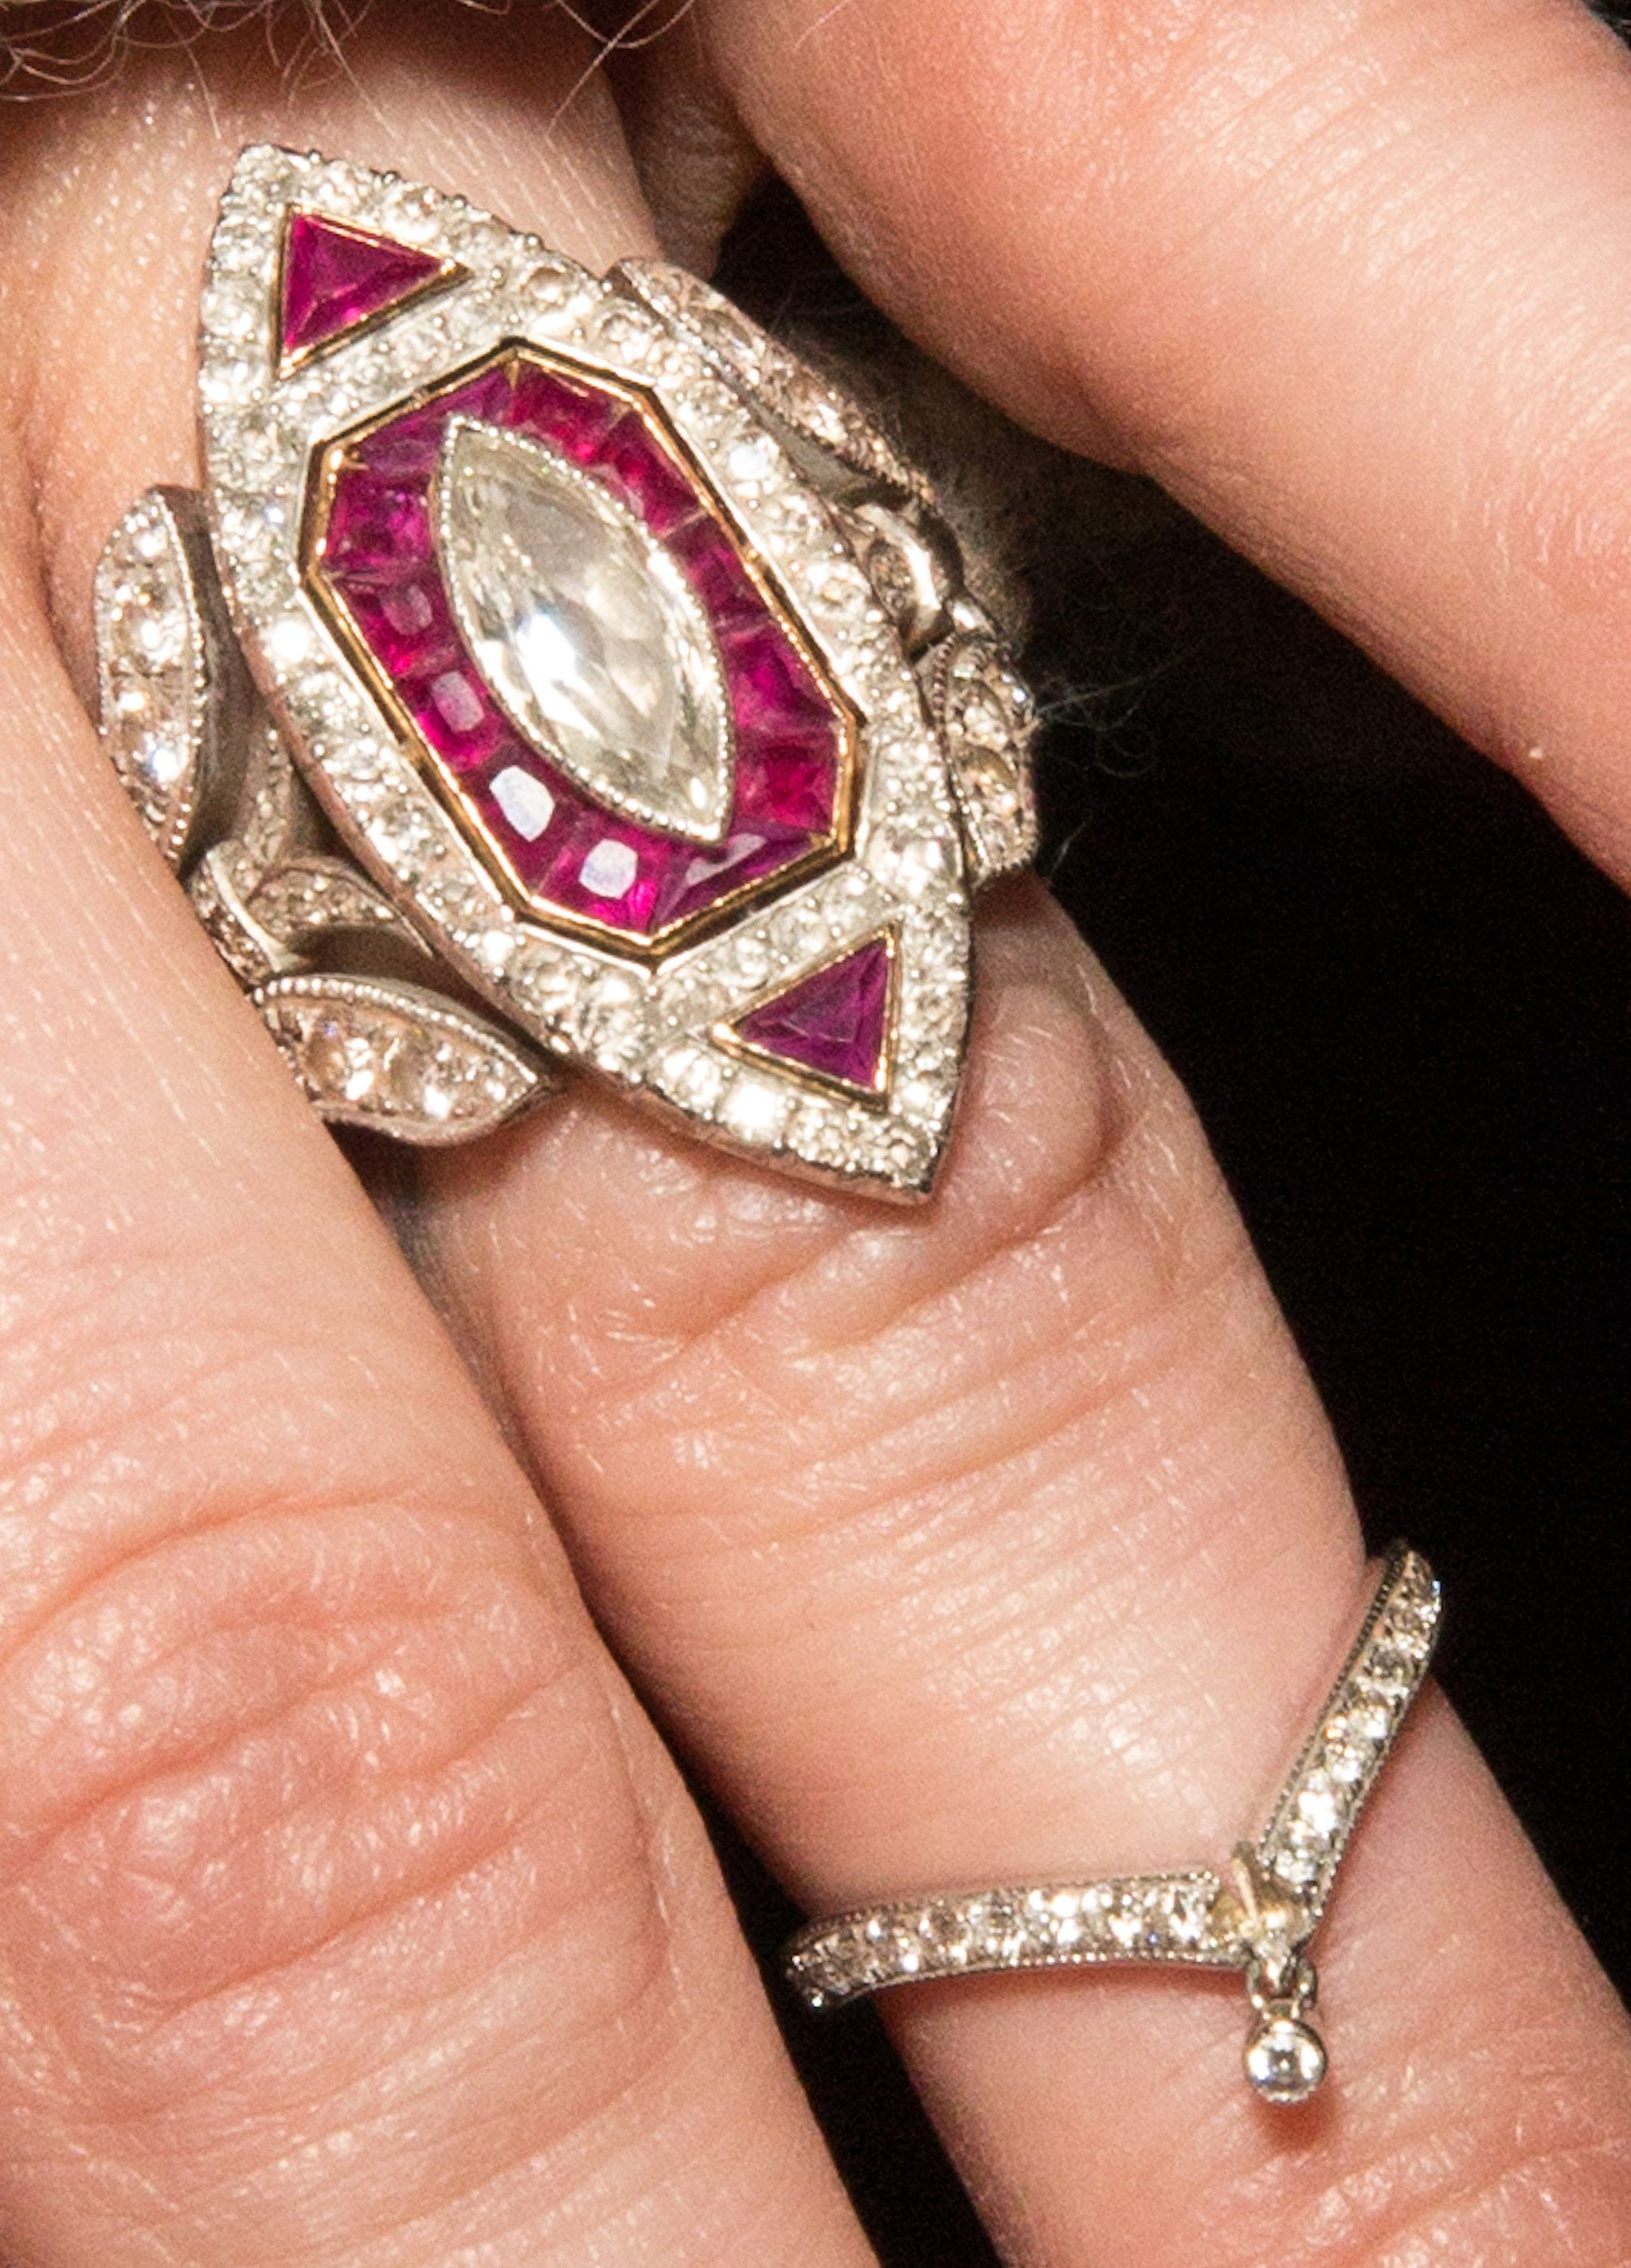 a22c0ed02 Ashlee Simpson's five-carat vintage engagement ring designed by Neil Lane